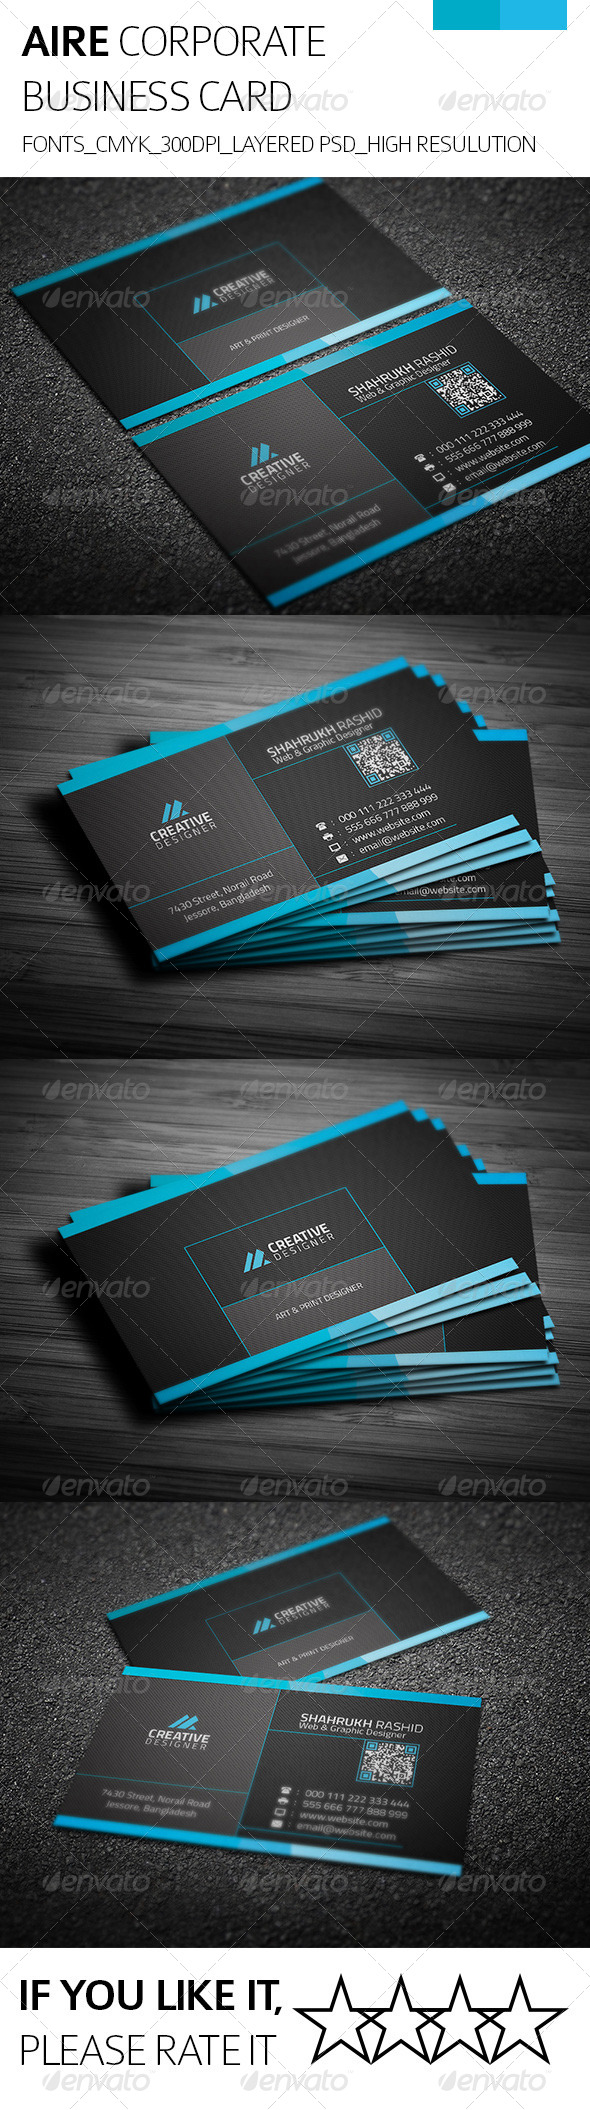 Aire & Corporate Business Card - Corporate Business Cards